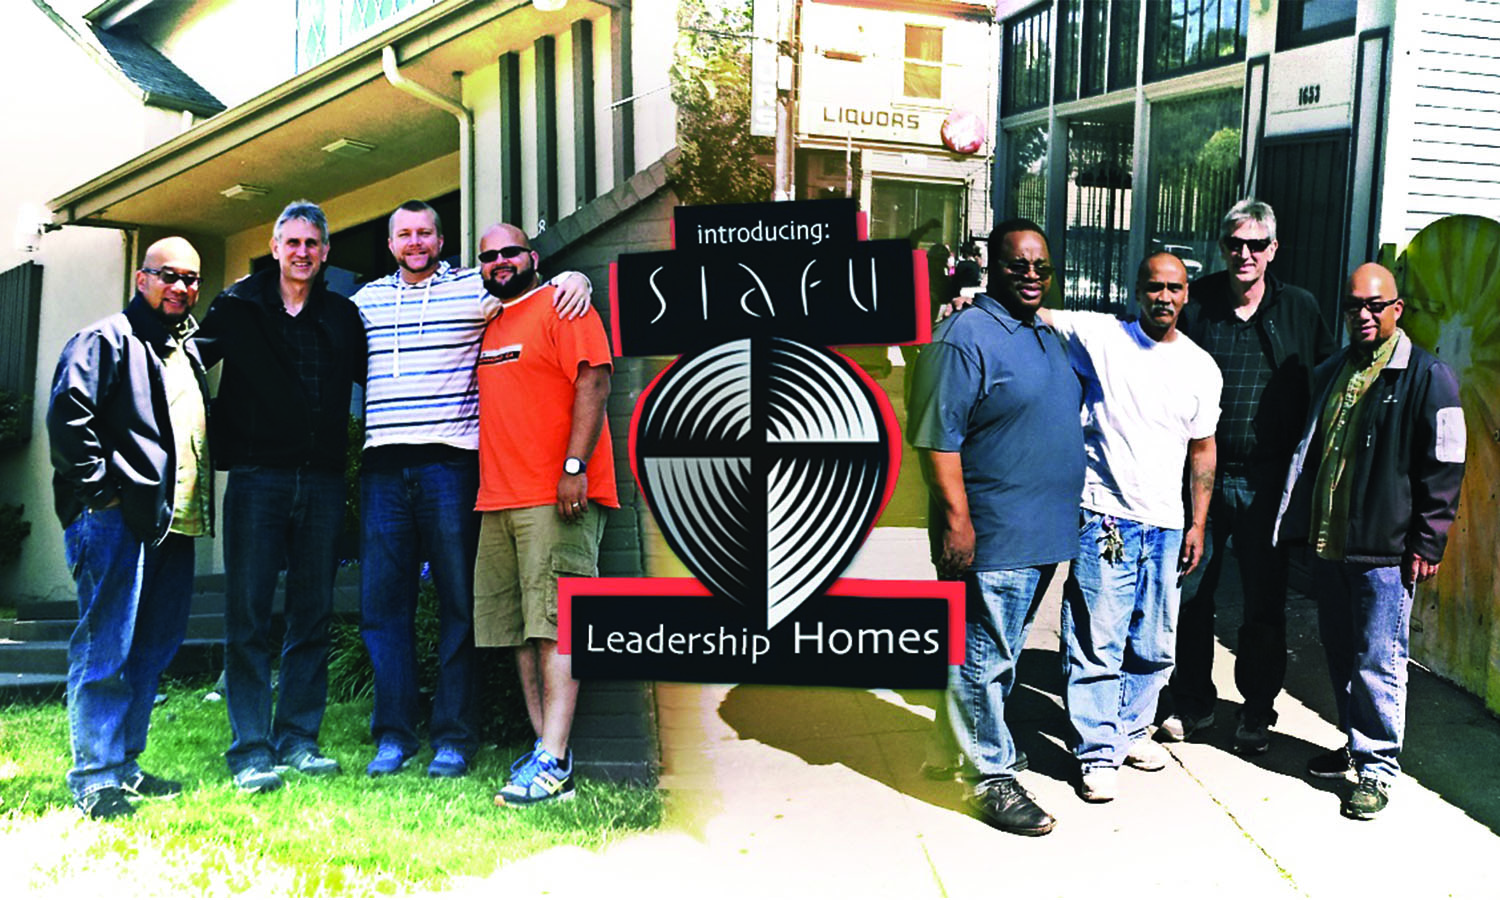 SIAFU Leadership Homes